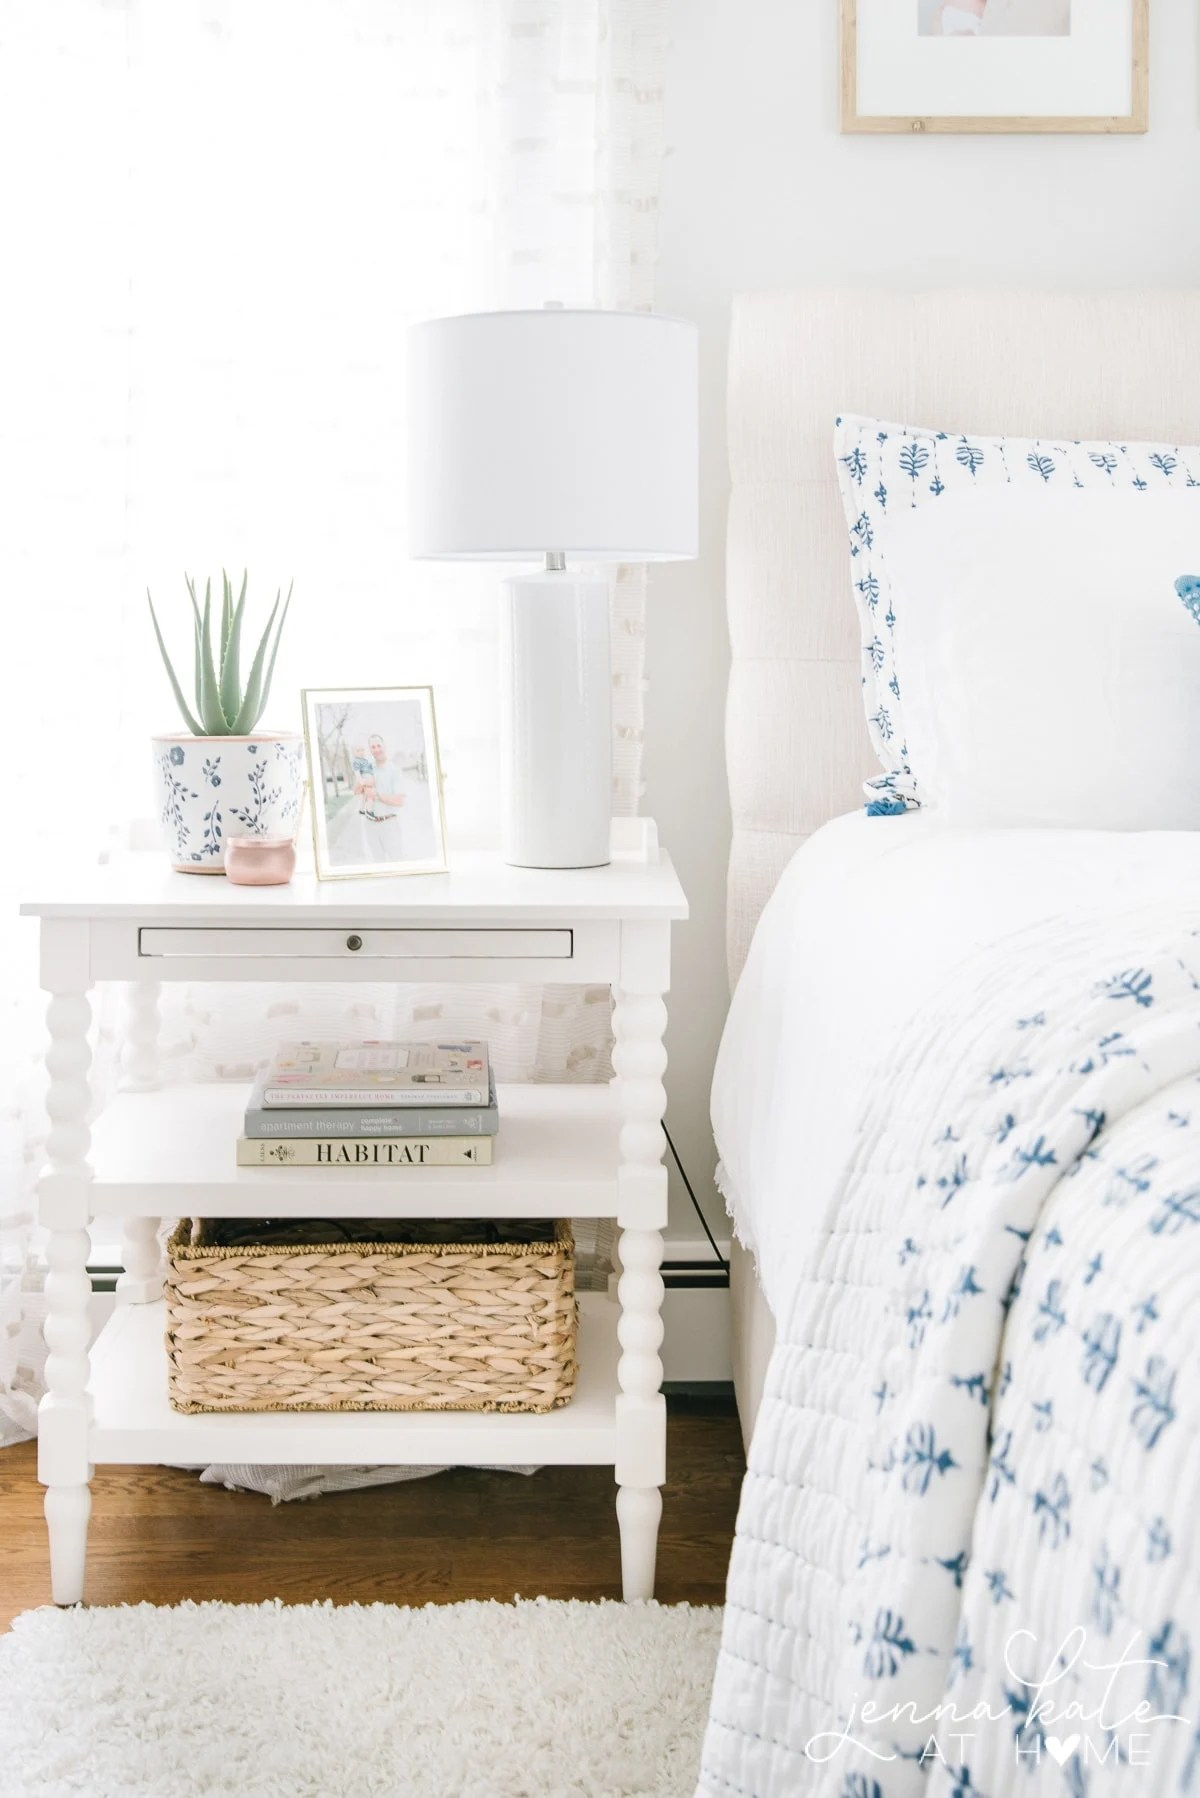 The prettiest soft color for a master bedroom in summer for a 2019 summer home tour